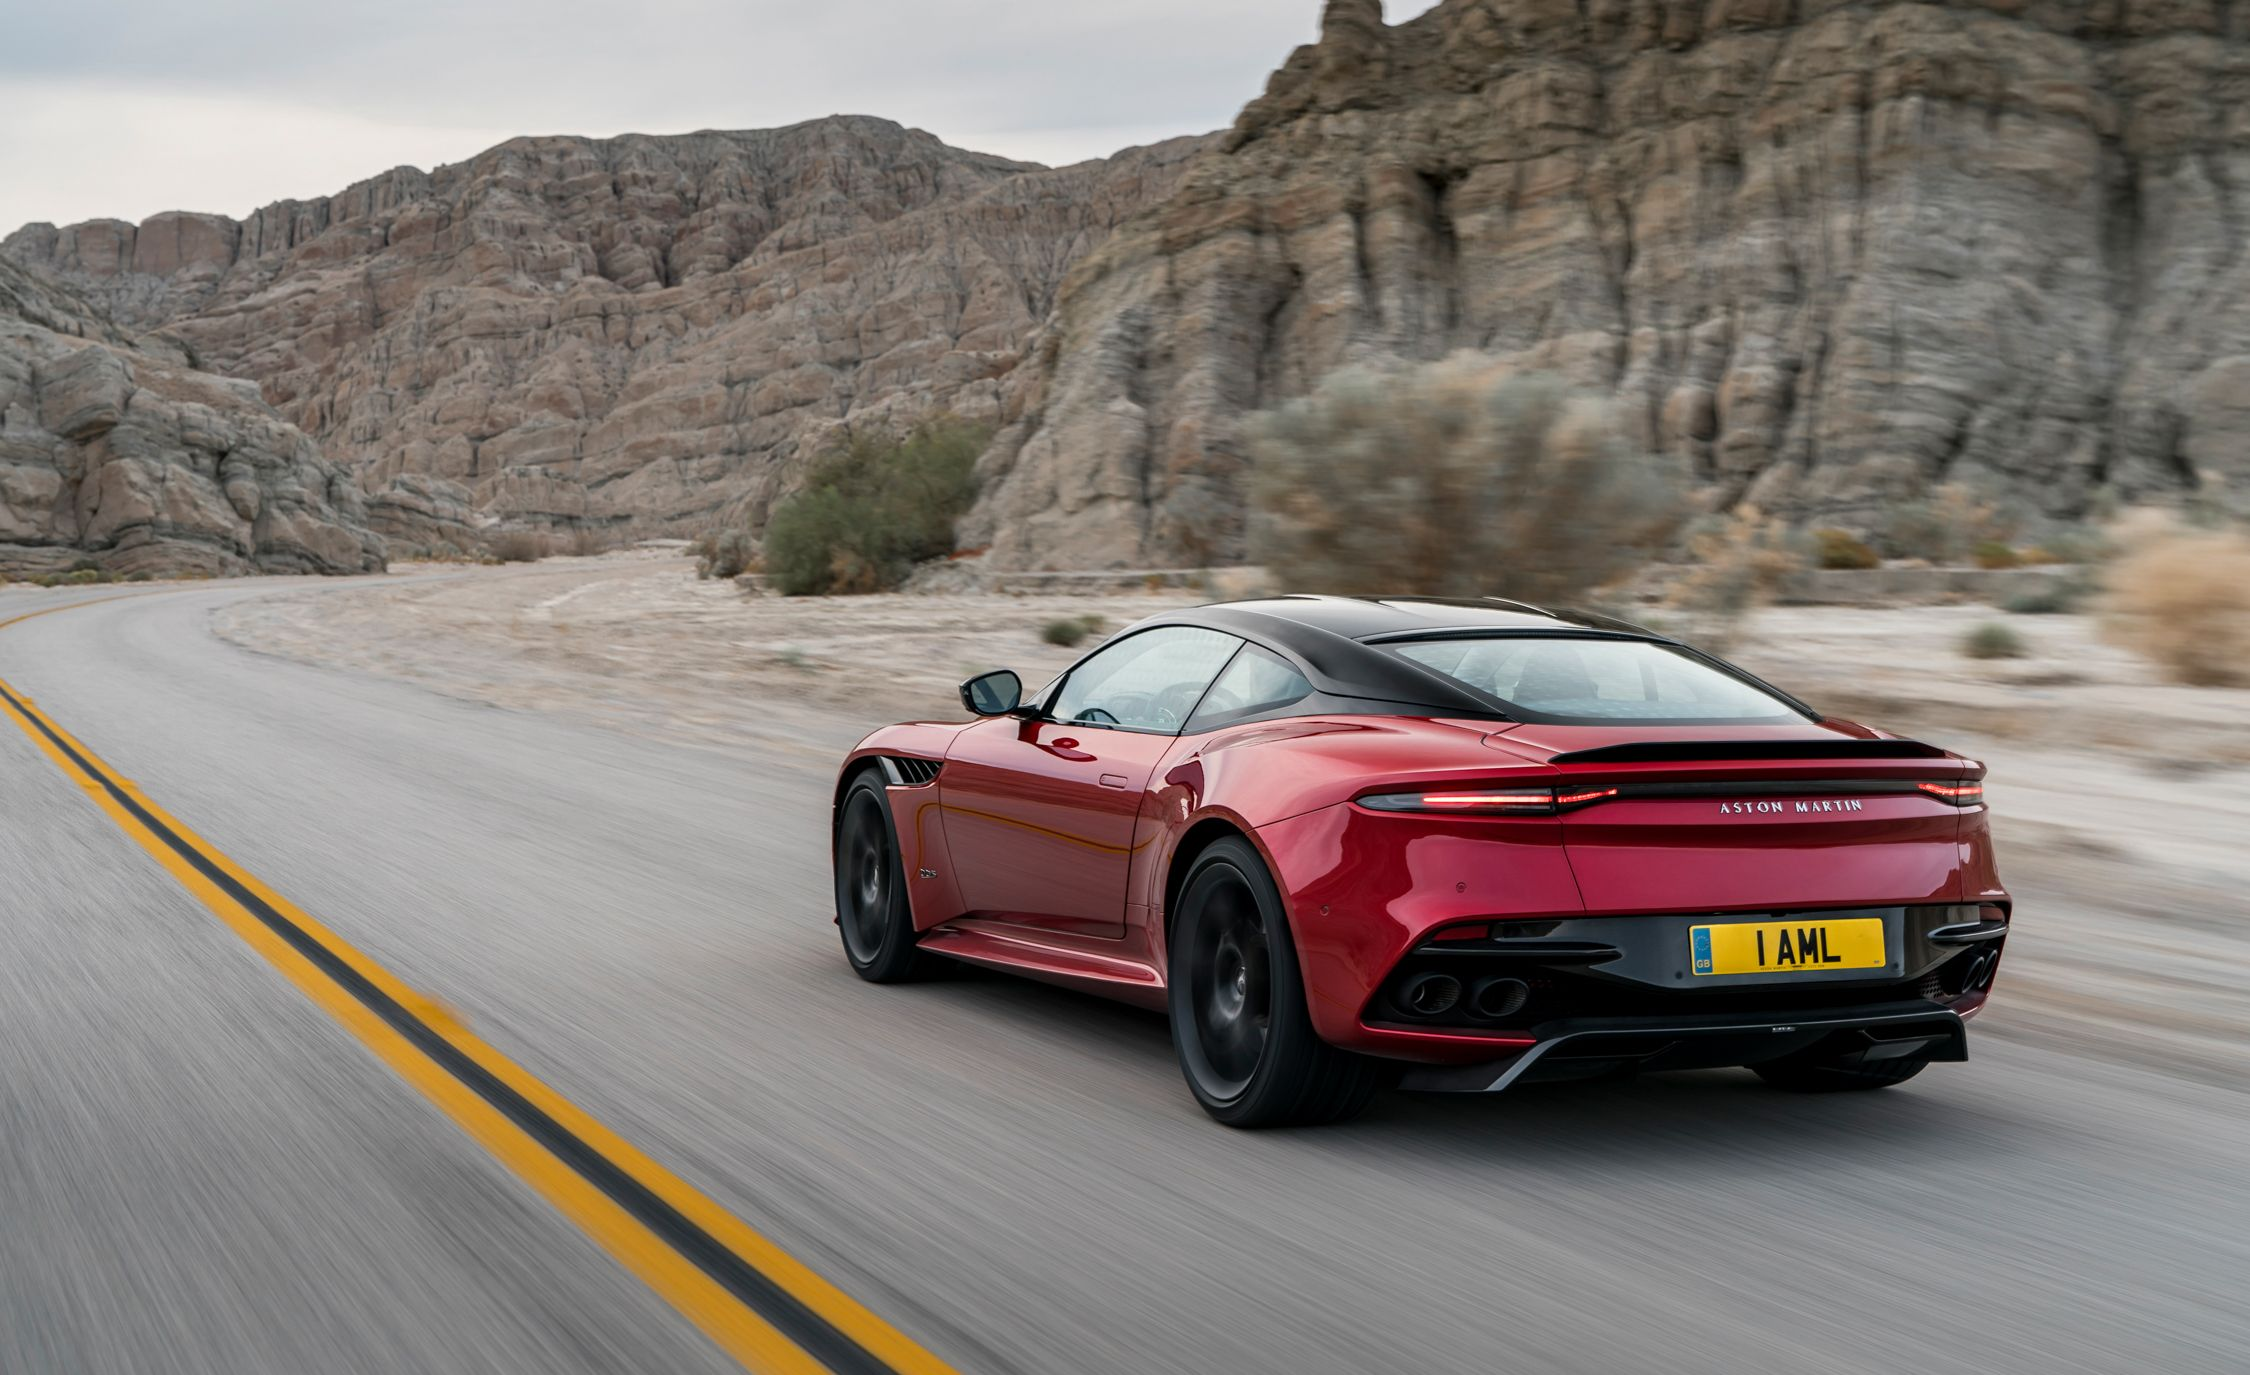 2019 aston martin dbs superleggera reviews | aston martin dbs